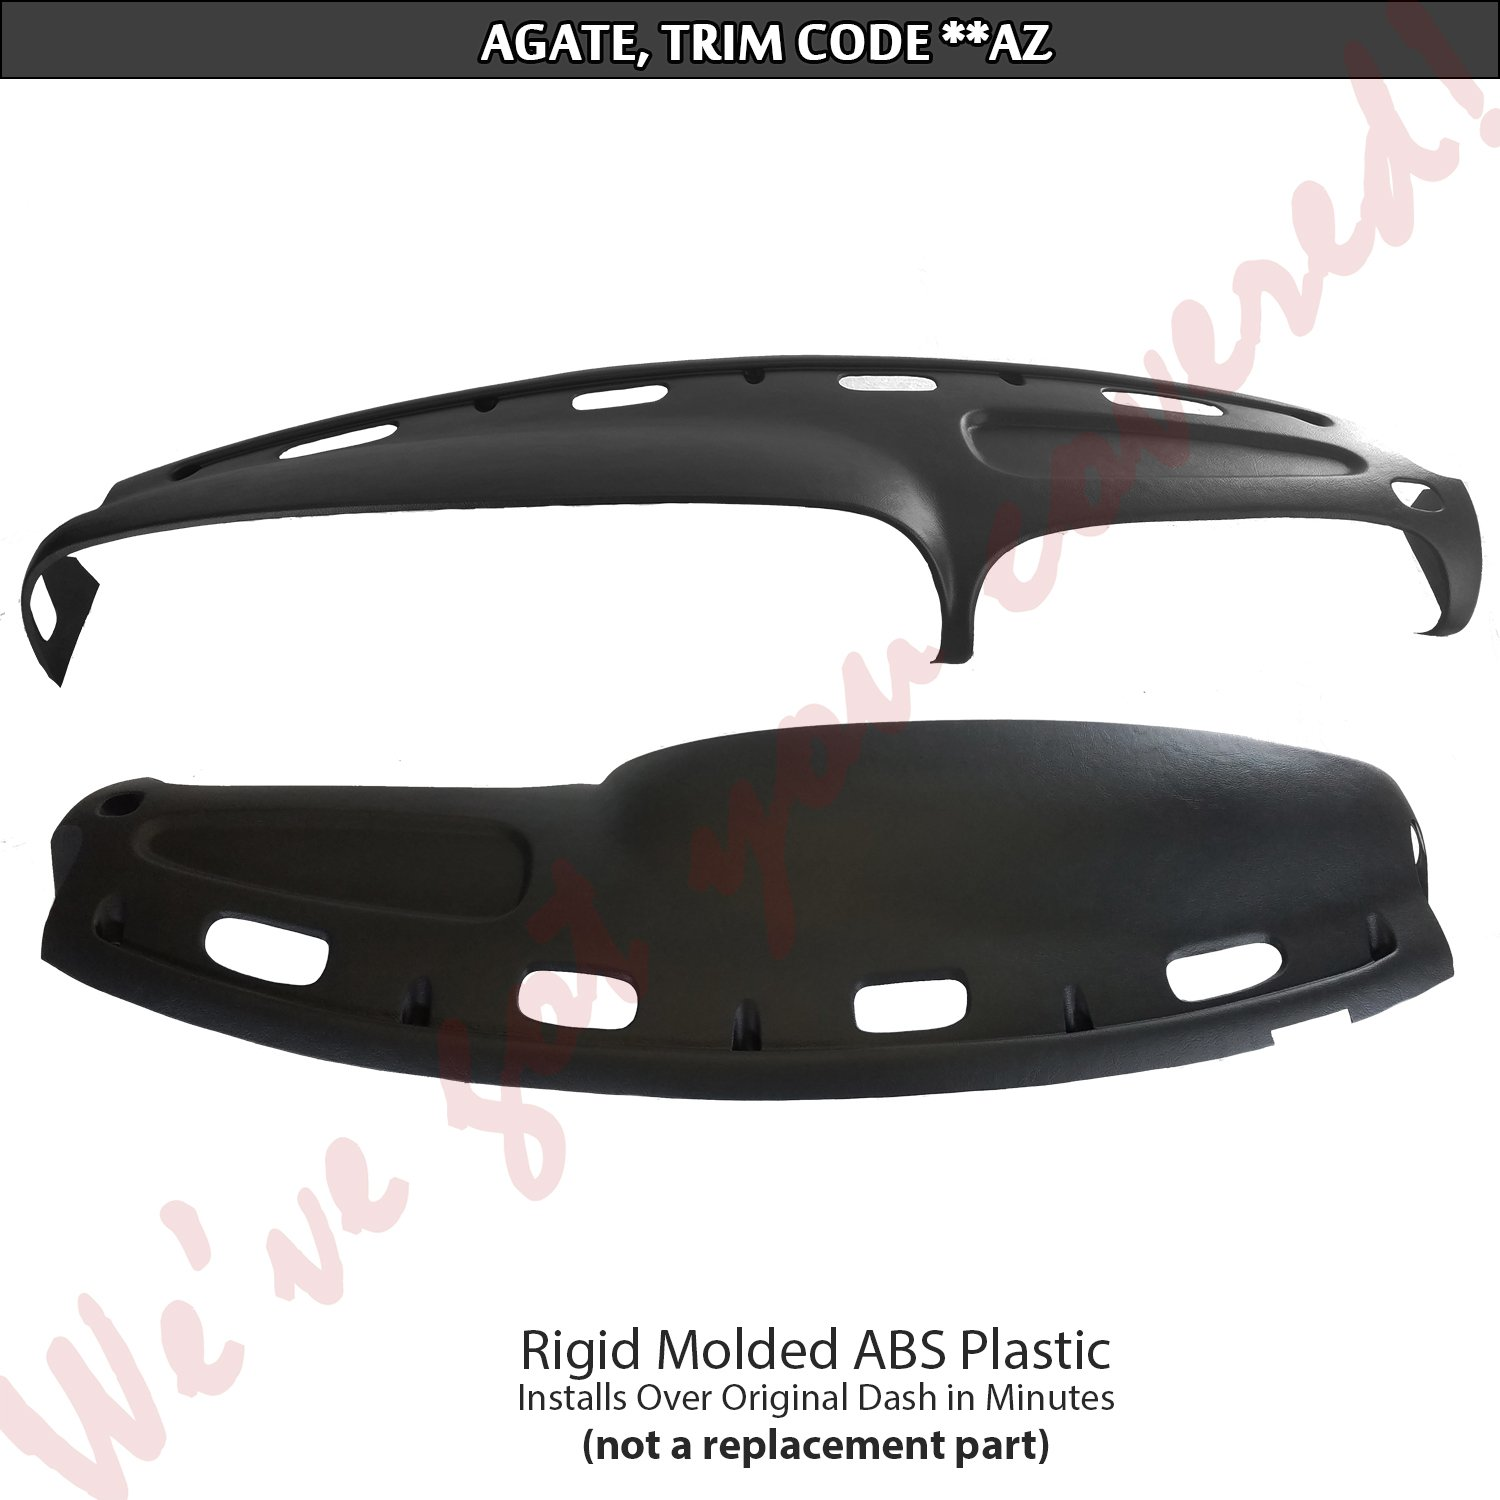 DashSkin Molded Dash Cover Compatible with 98-01 Dodge Ram in Agate